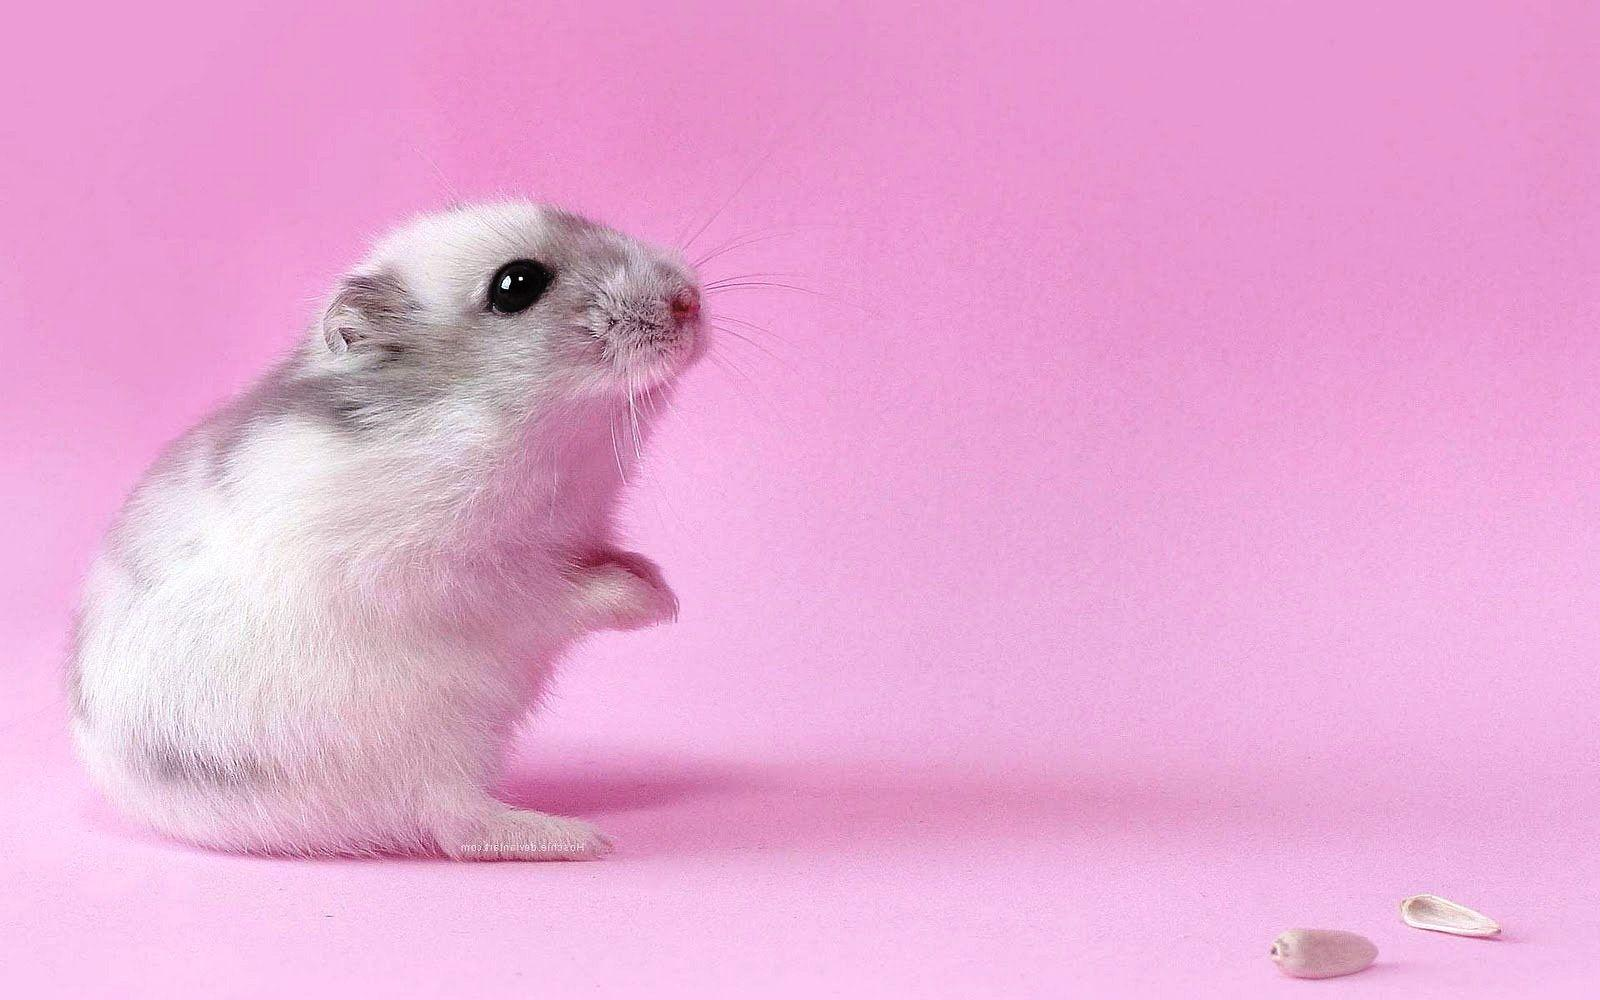 ideas about Hamster Wallpaper on Pinterest Hamsters, Cute 1600 ...